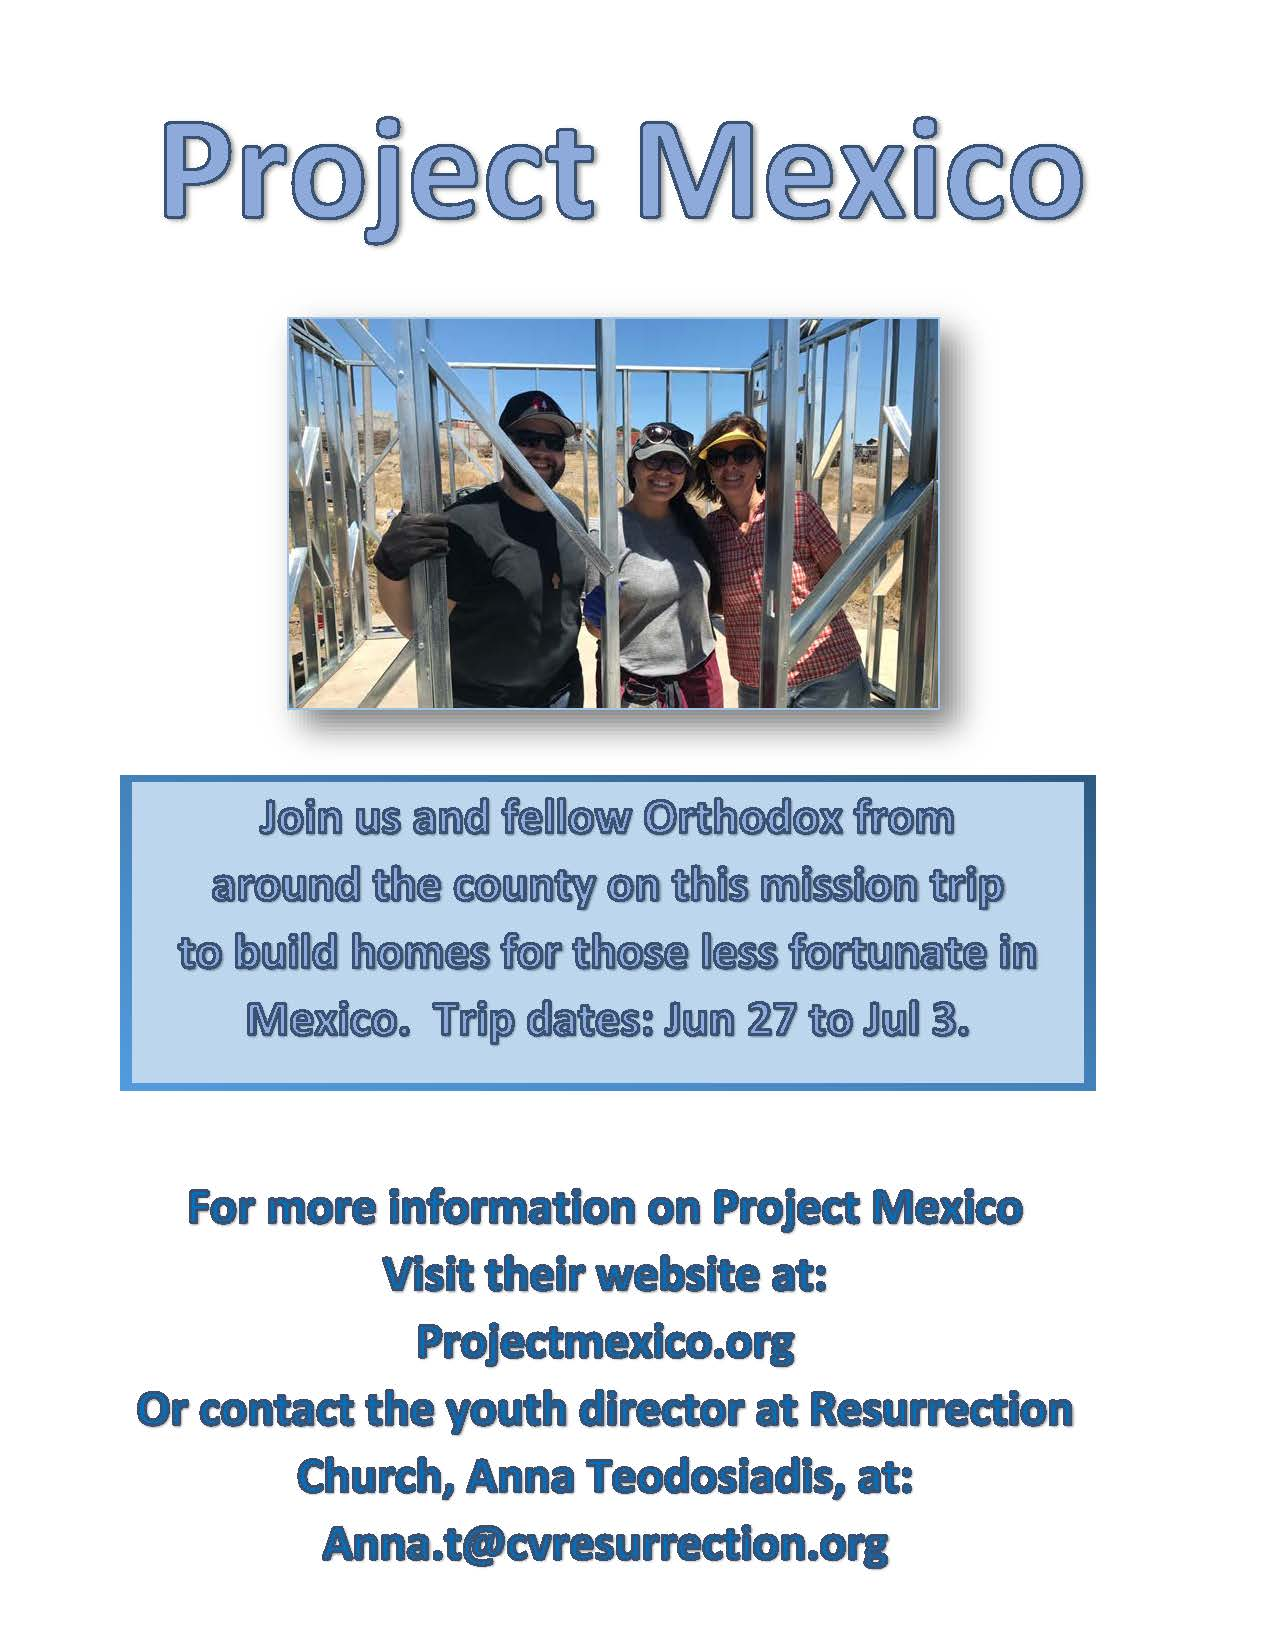 Project Mexico flyer